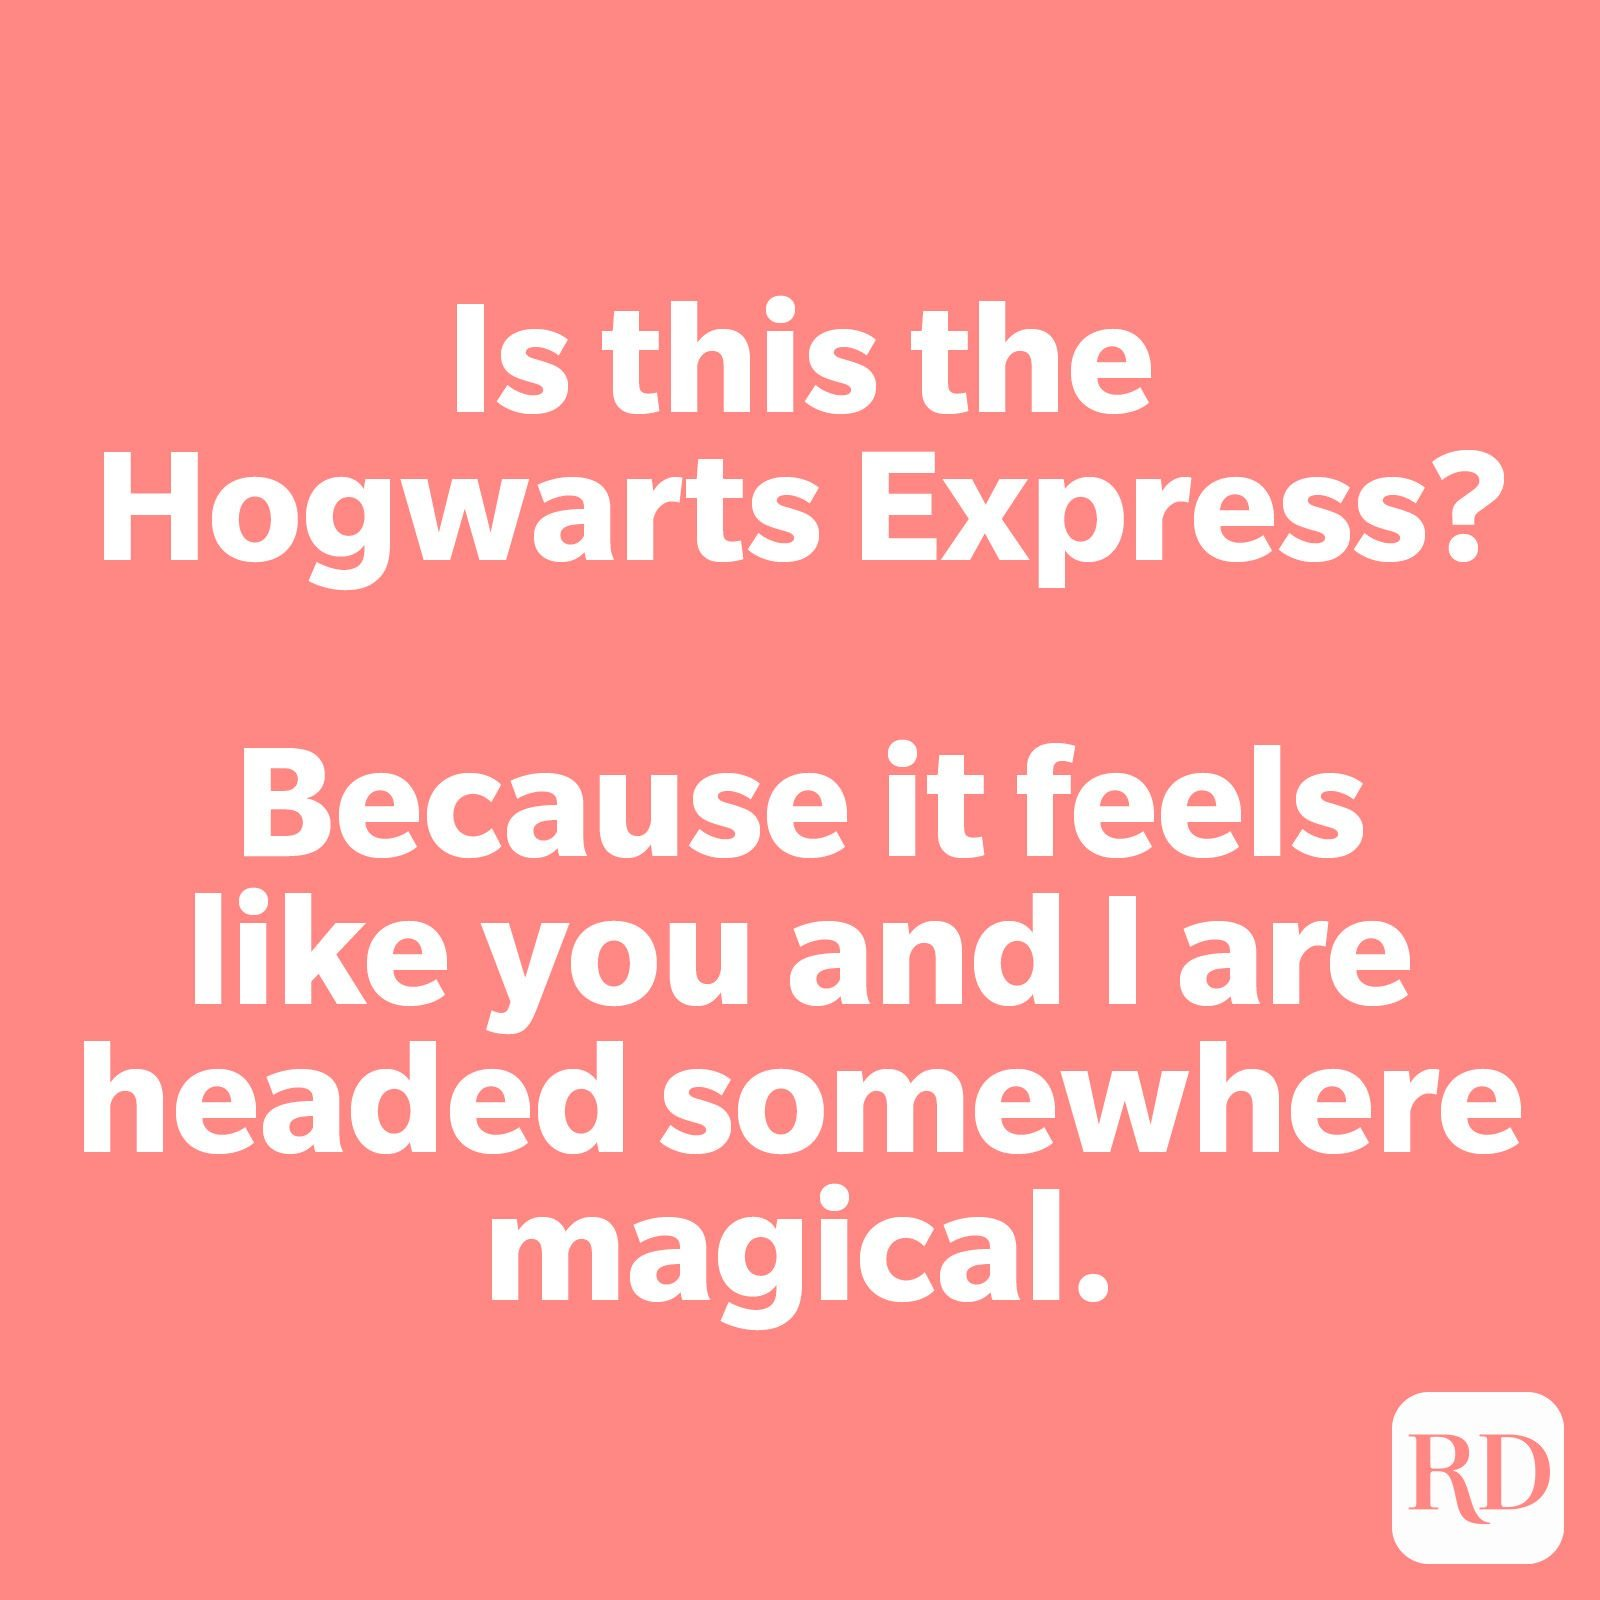 Is this the Hogwarts Express? Because it feels like you and I are headed somewhere magical.